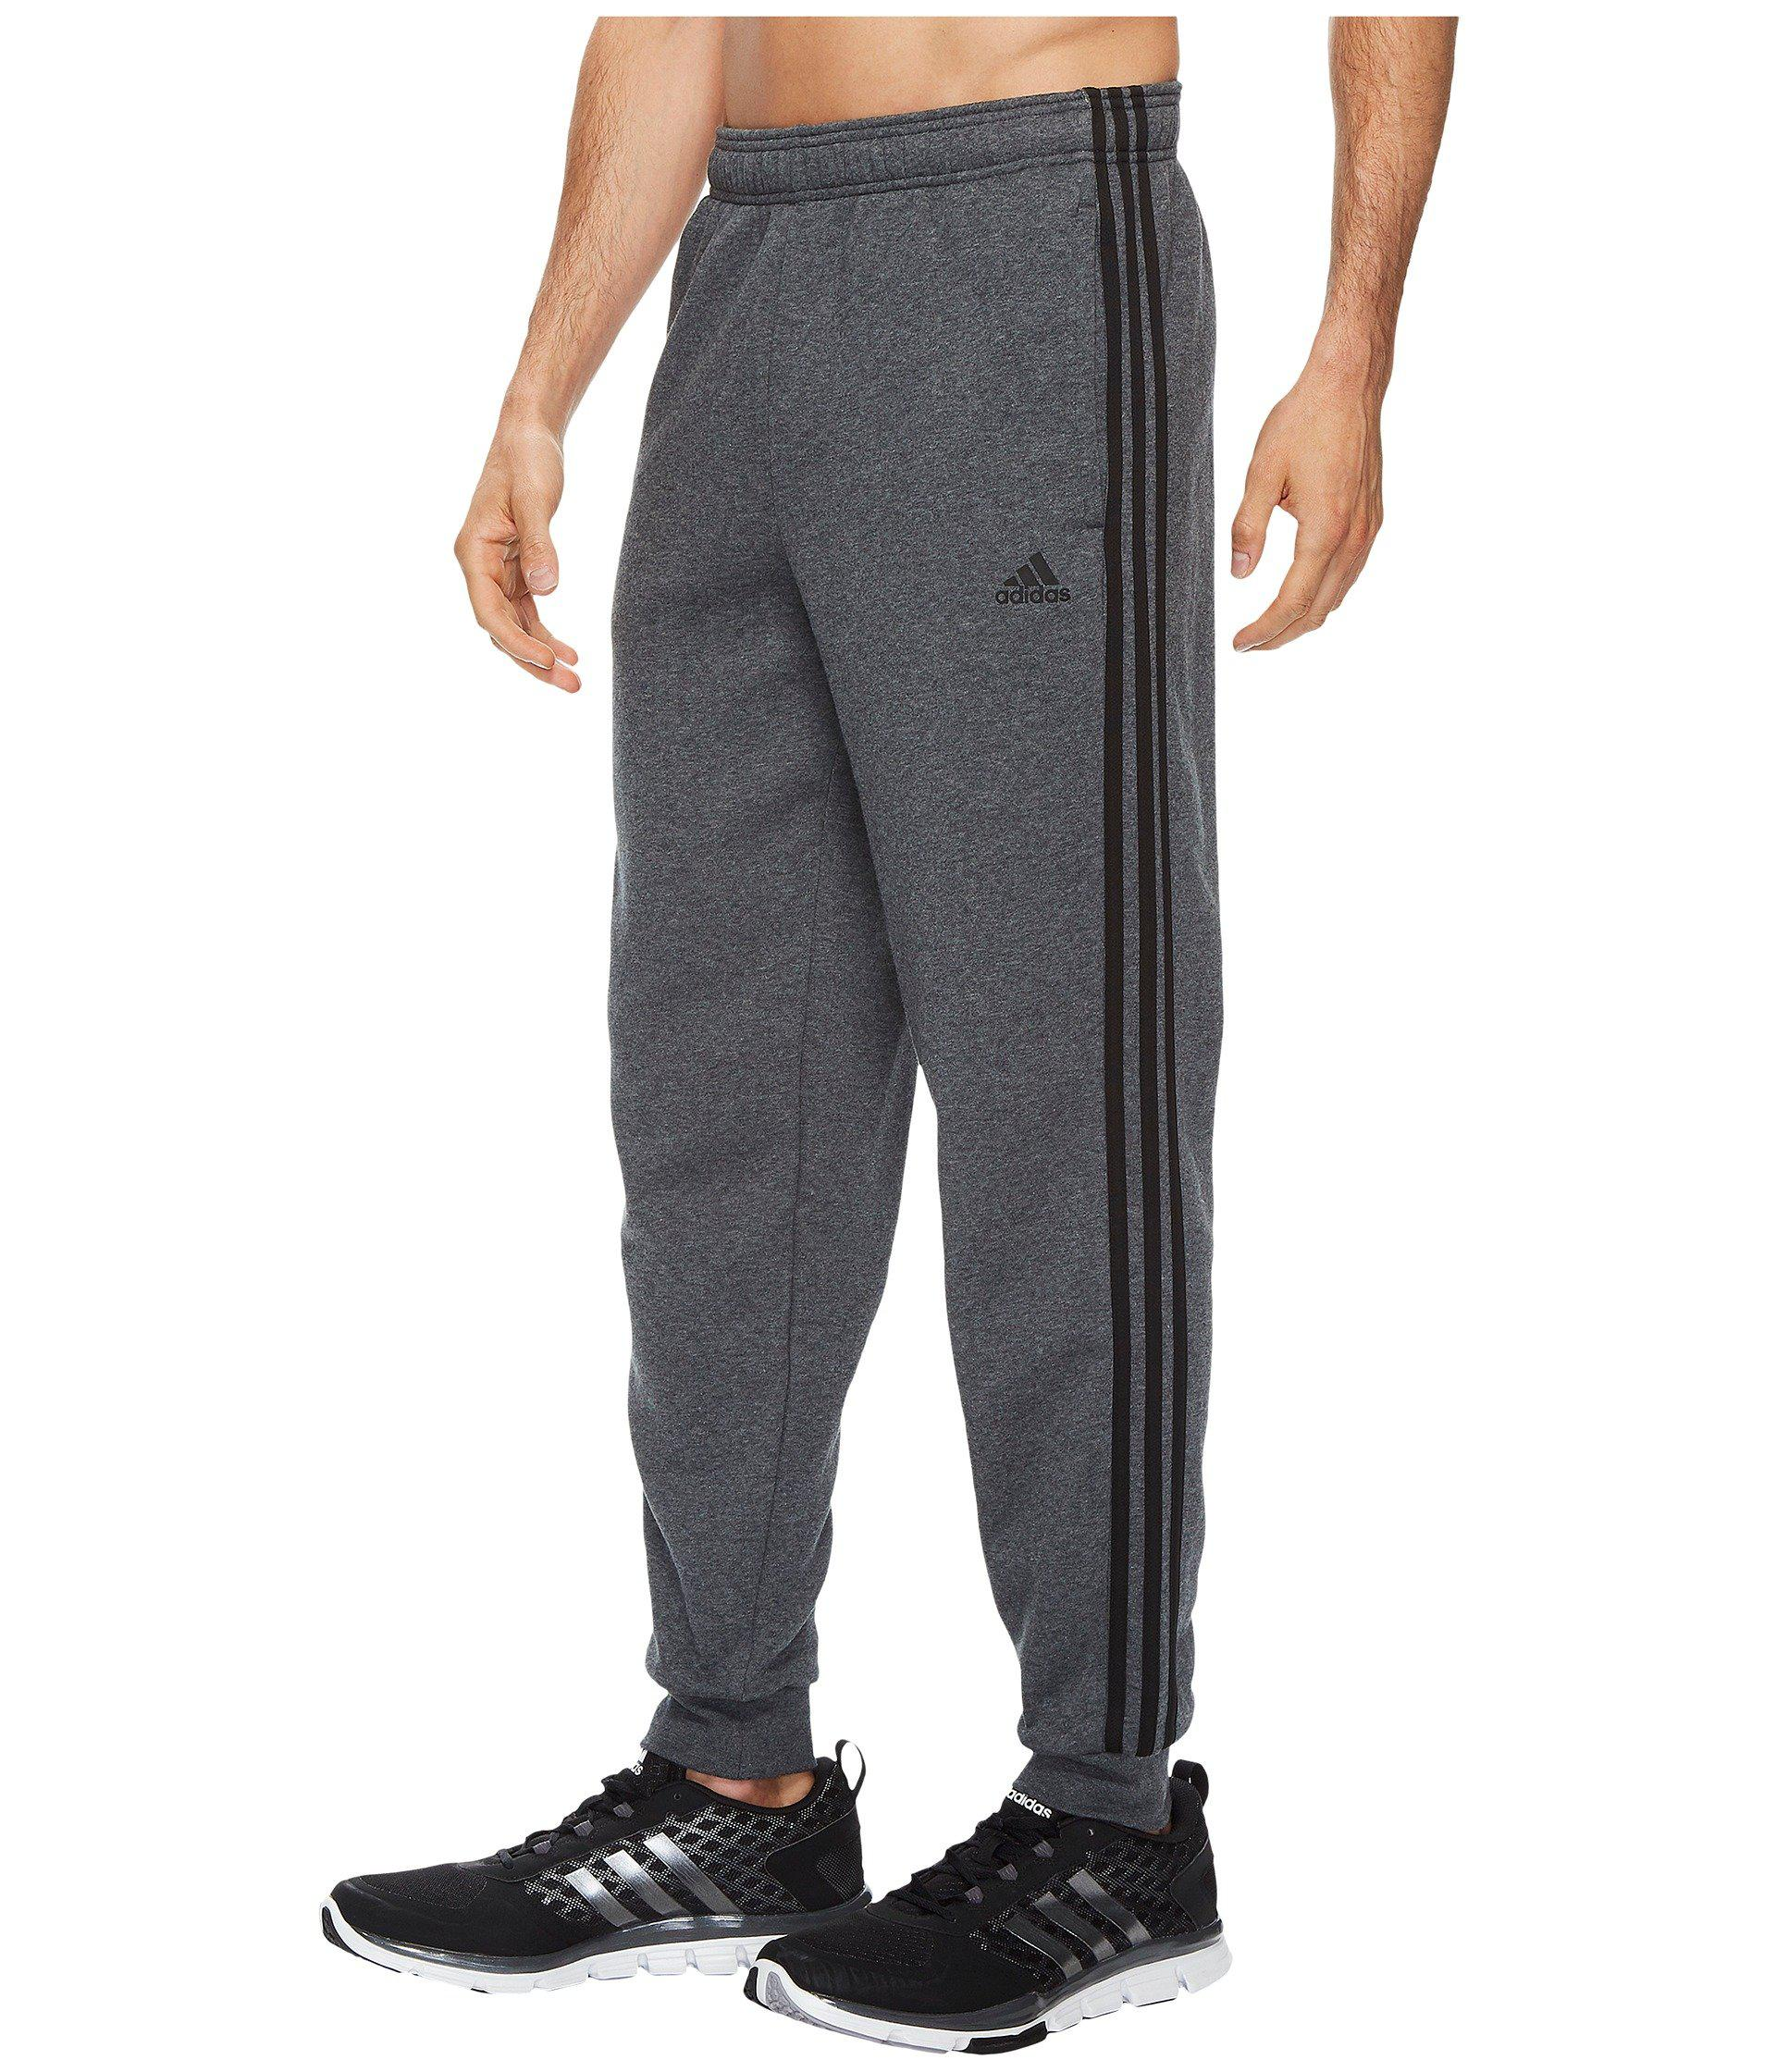 Lyst adidas Essentials 3s Tapered & Cuffed Pants in Gray